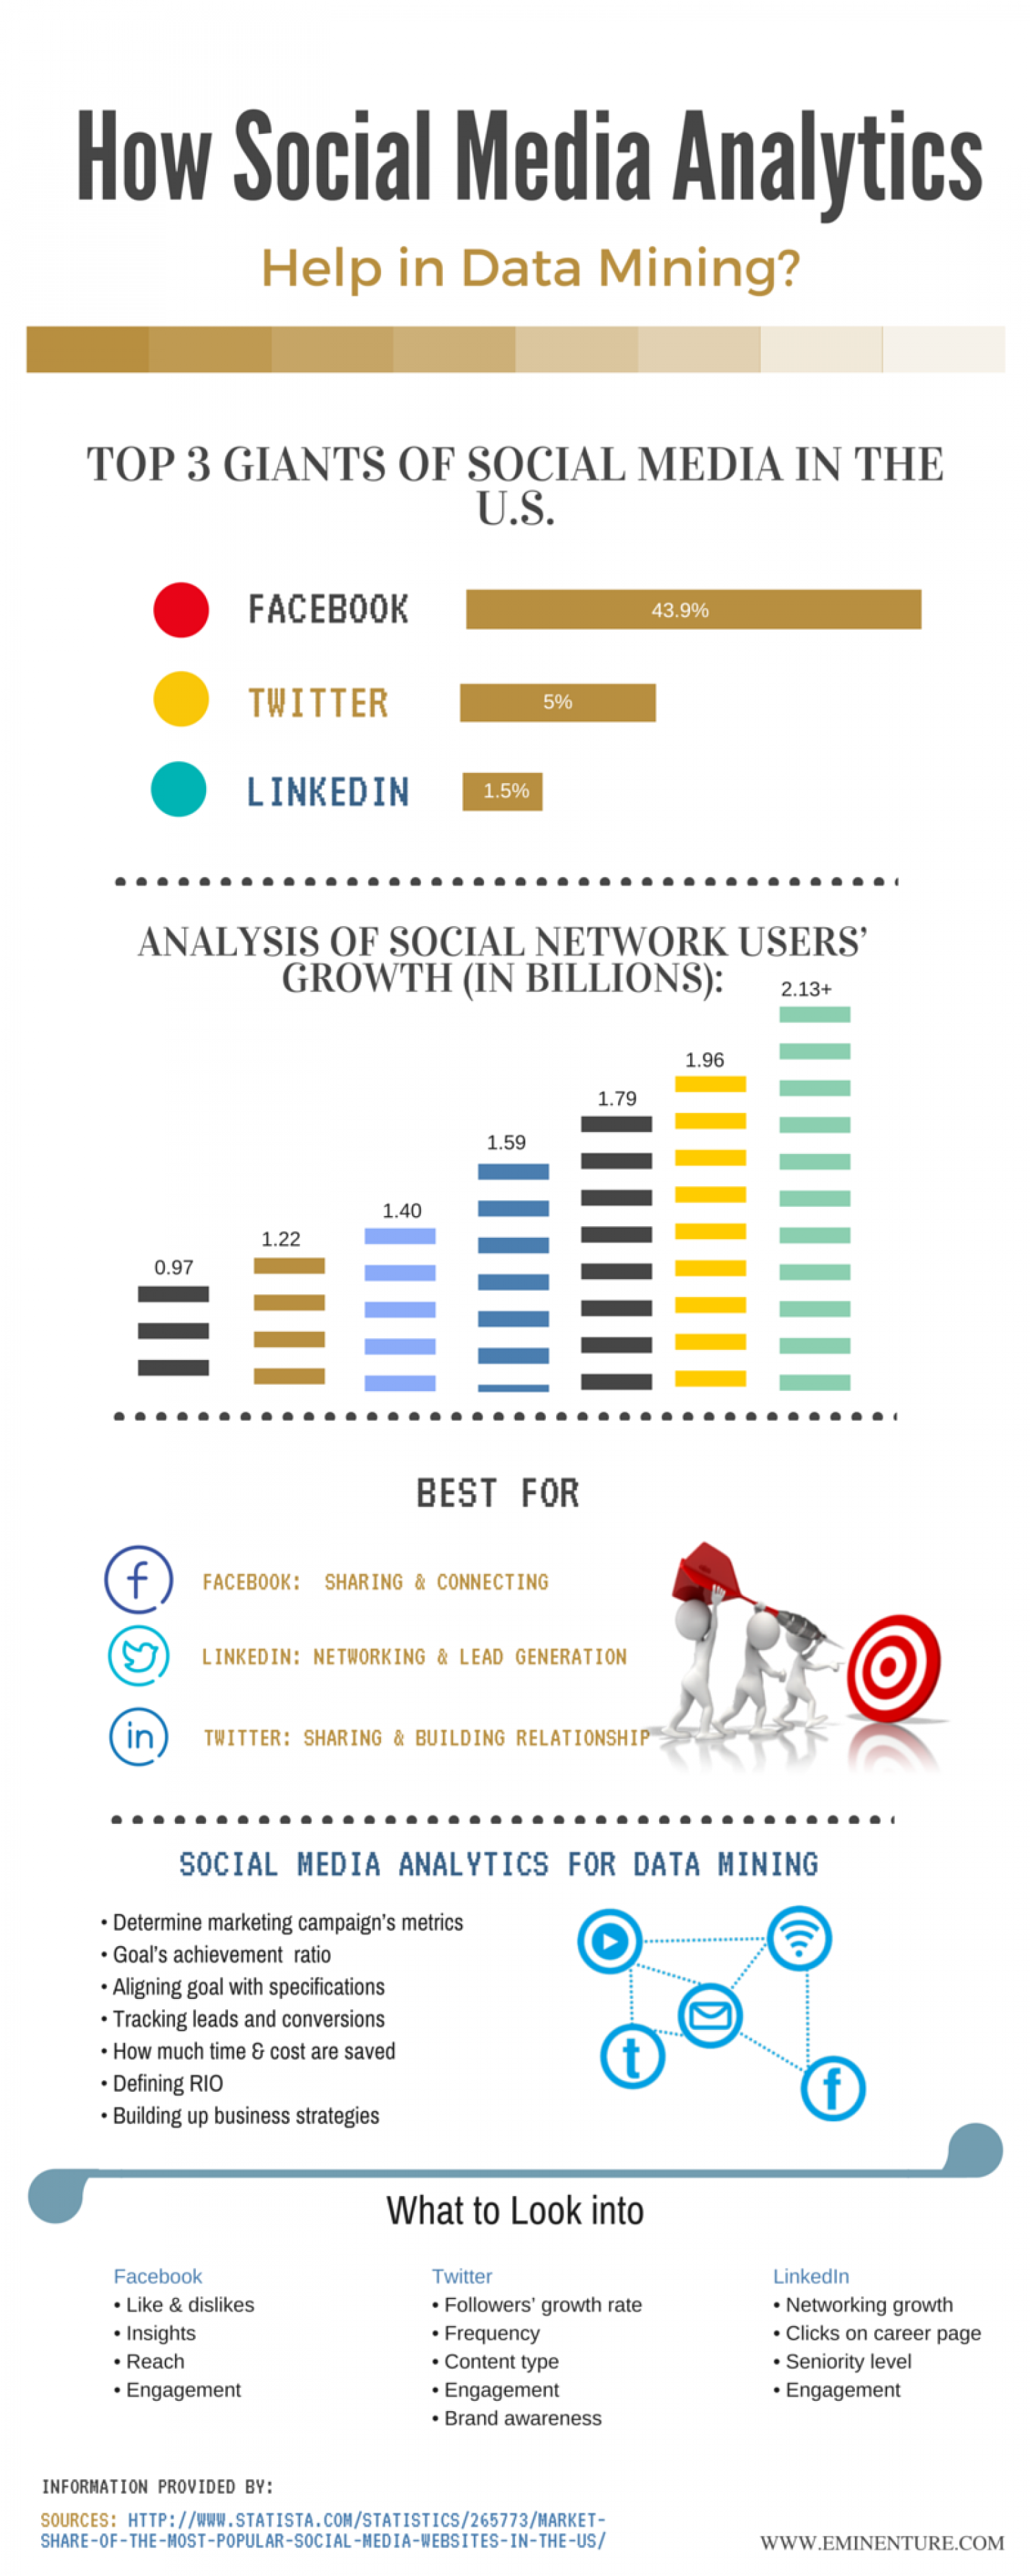 How Social Media Analytics Help in Data Mining Infographic